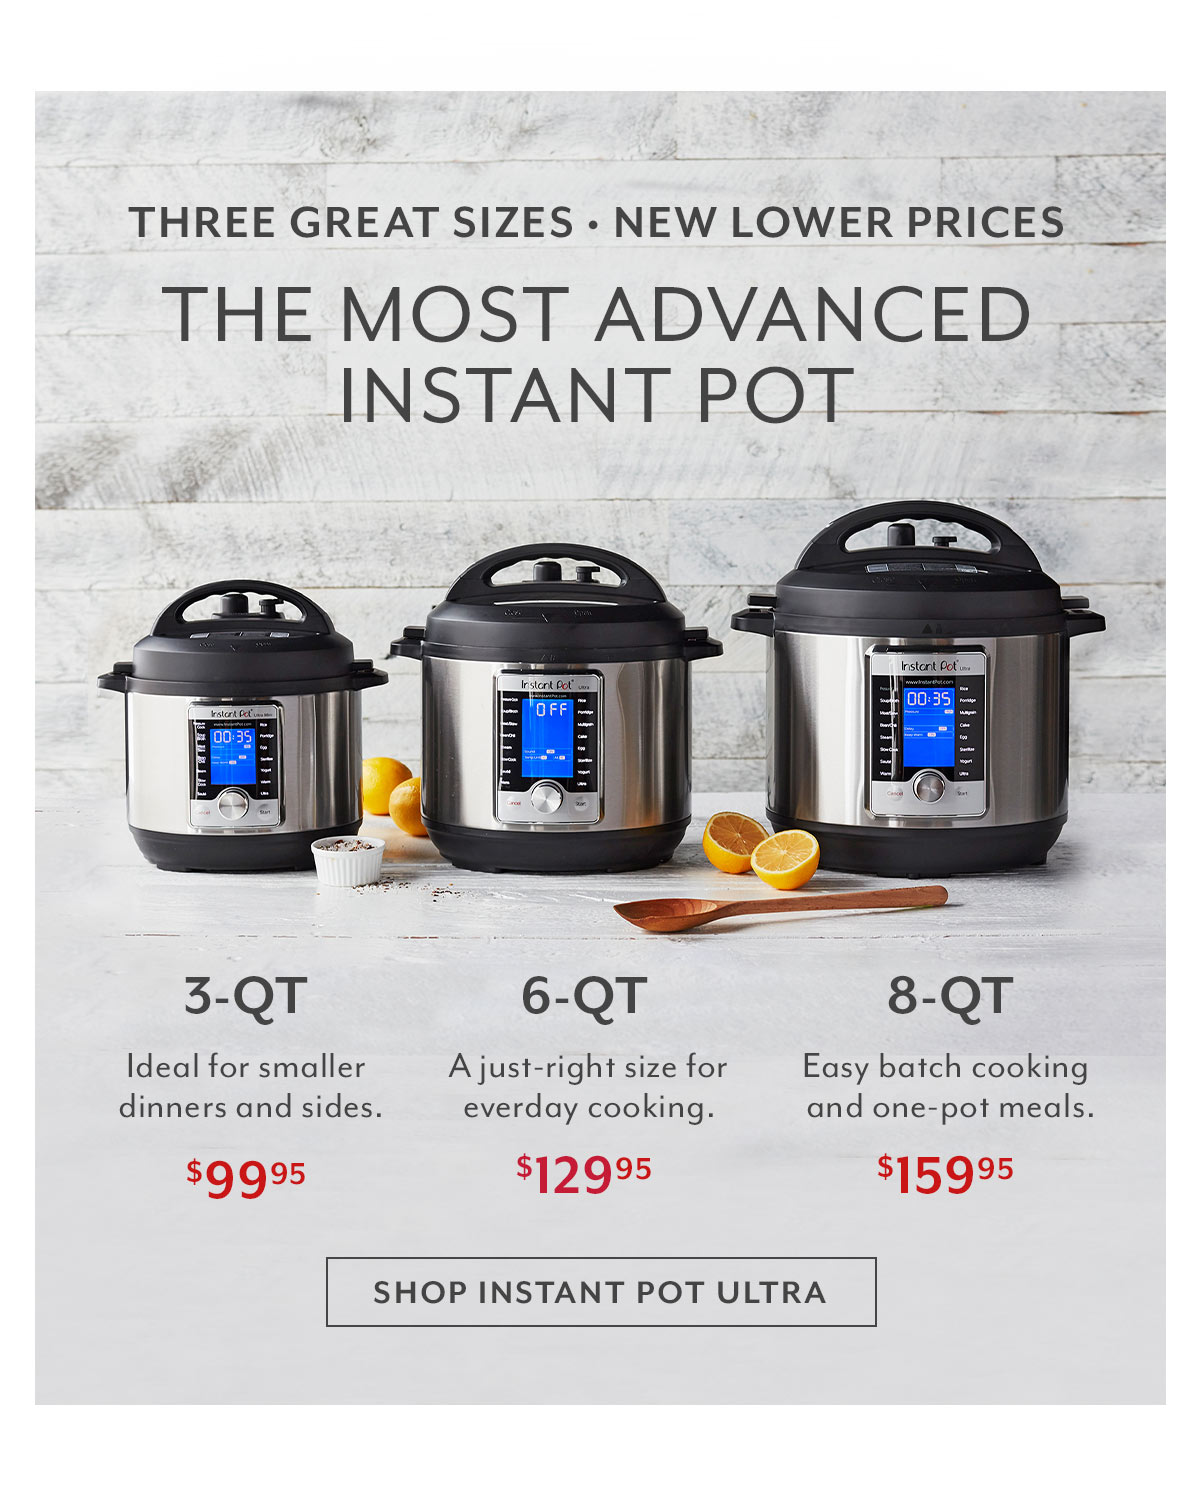 Instant Pot: Three Great Sizes